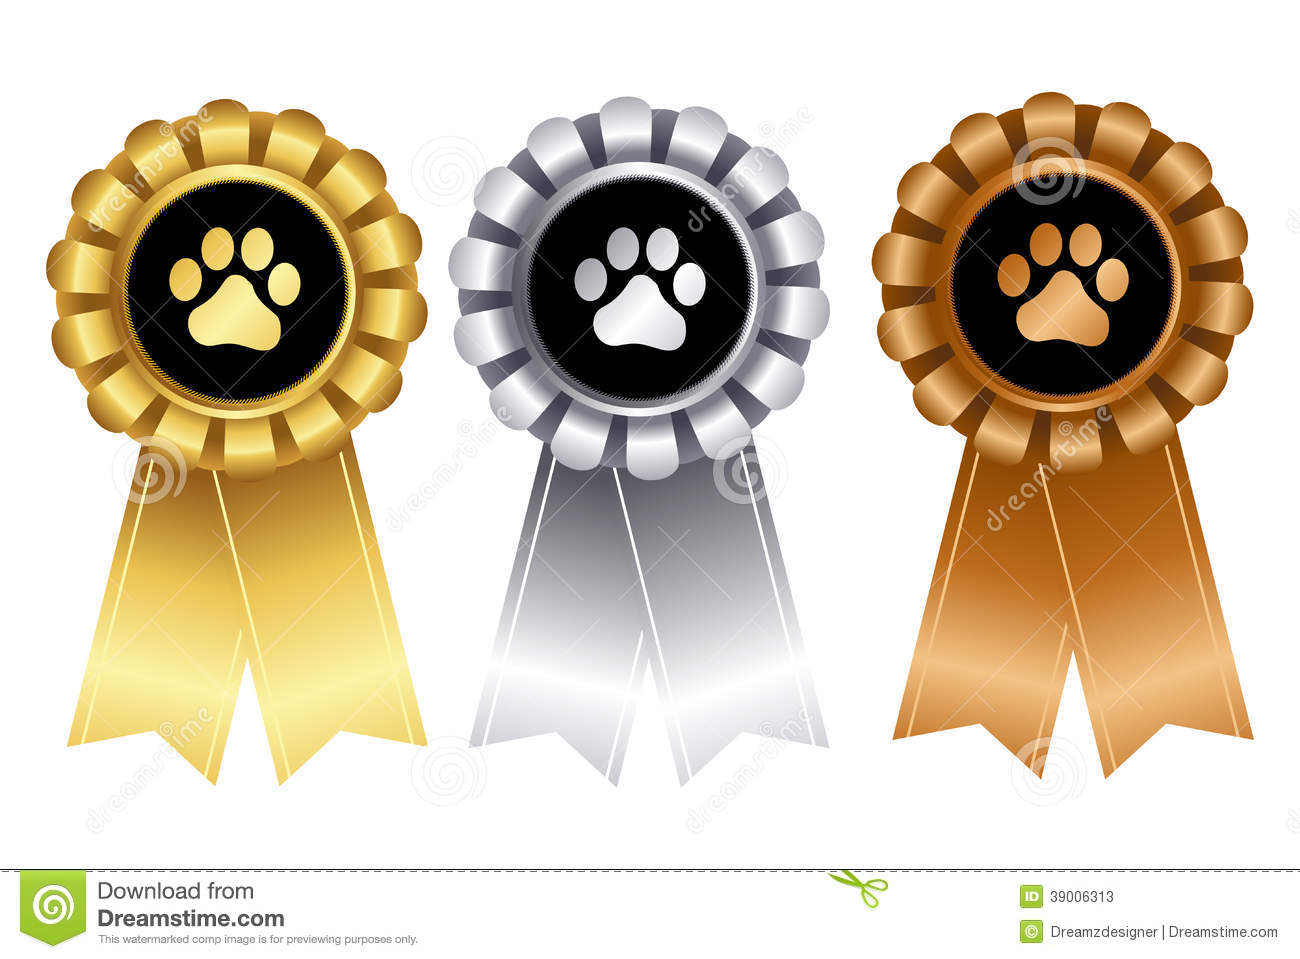 dog show certificate template - dog award ribbon rosettes for 1st 2nd and 3rd place